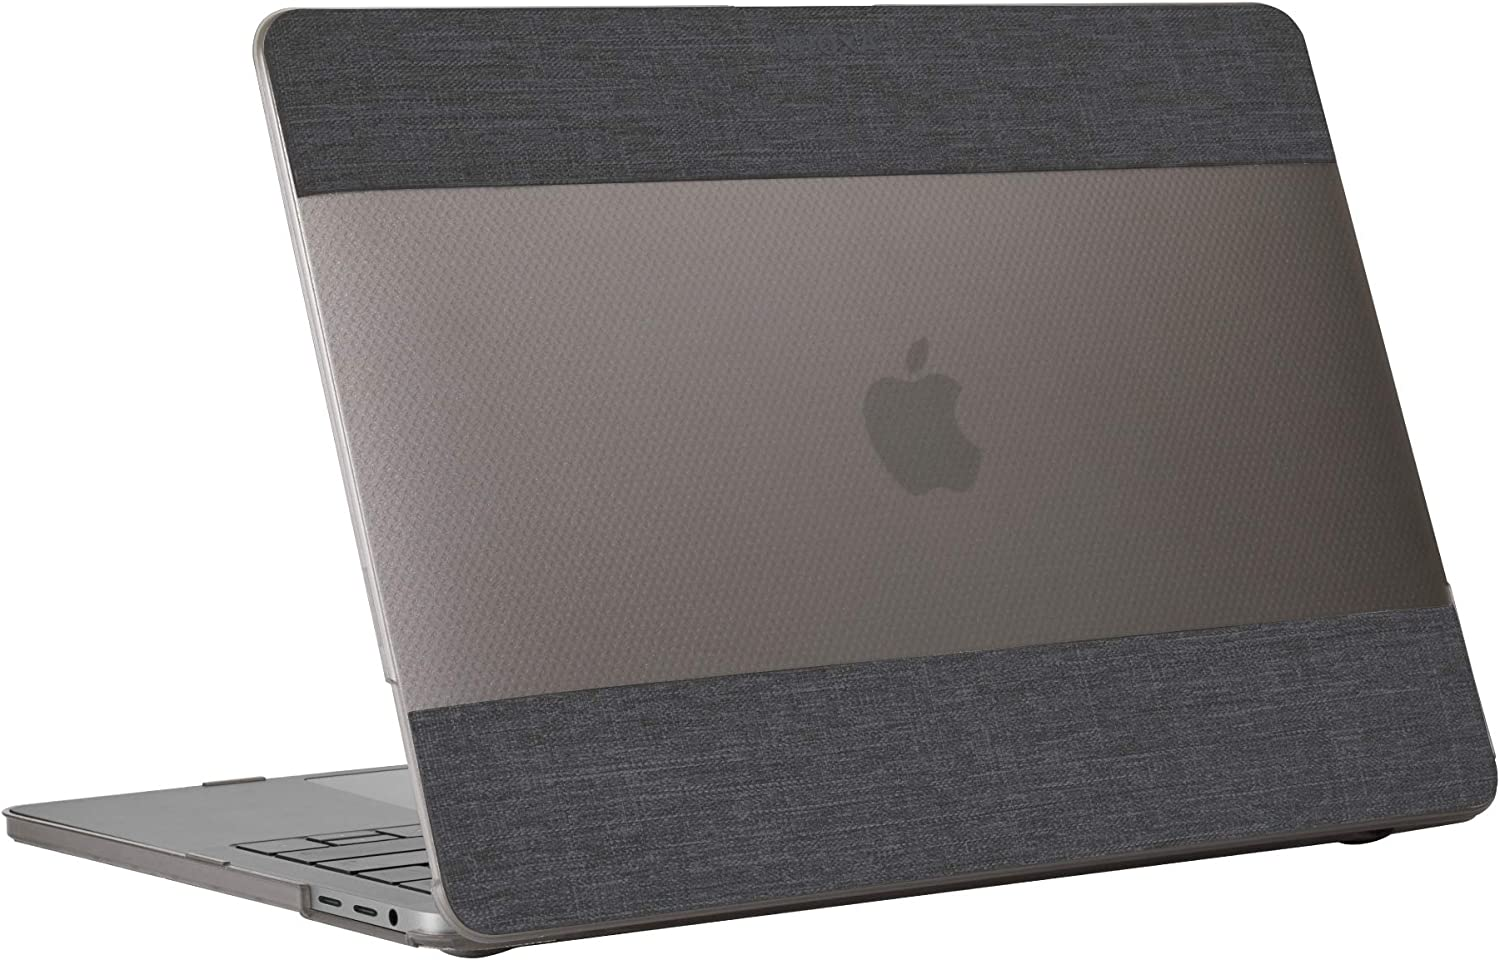 PROXA Laptop Case for MacBook Pro 13 inch Case Released 2020, Hardshell Case Cover for MacBook Pro 13 inch 2020, A2289/A2251/A2338(M1)-Creator Series, Space Grey